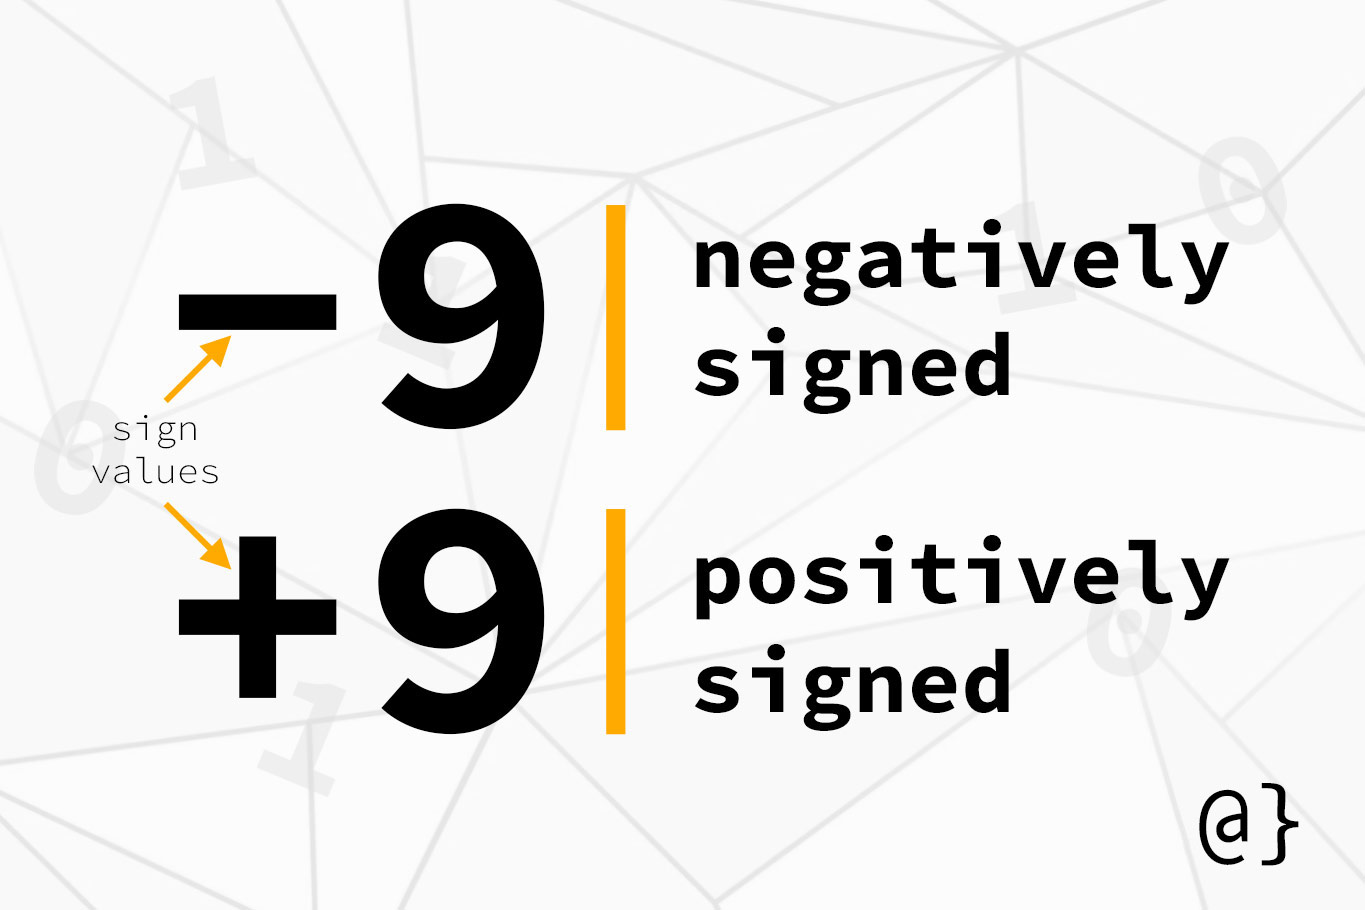 signed vs unsigned integers